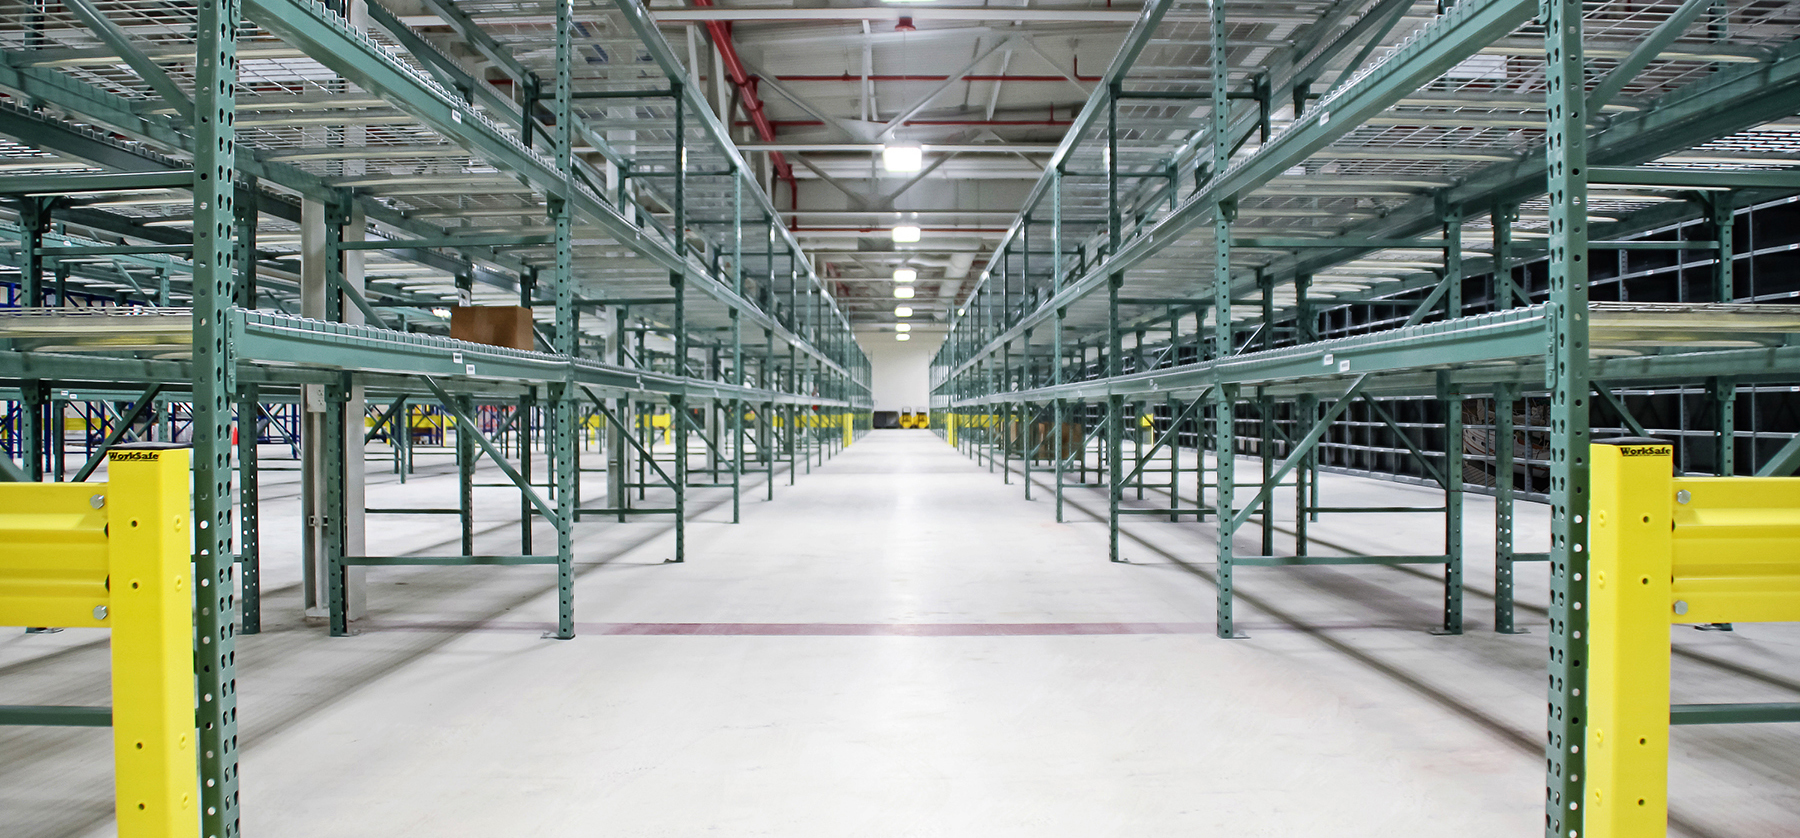 Warehouse with custom pallet racks, wire mesh decks, and safety equipment